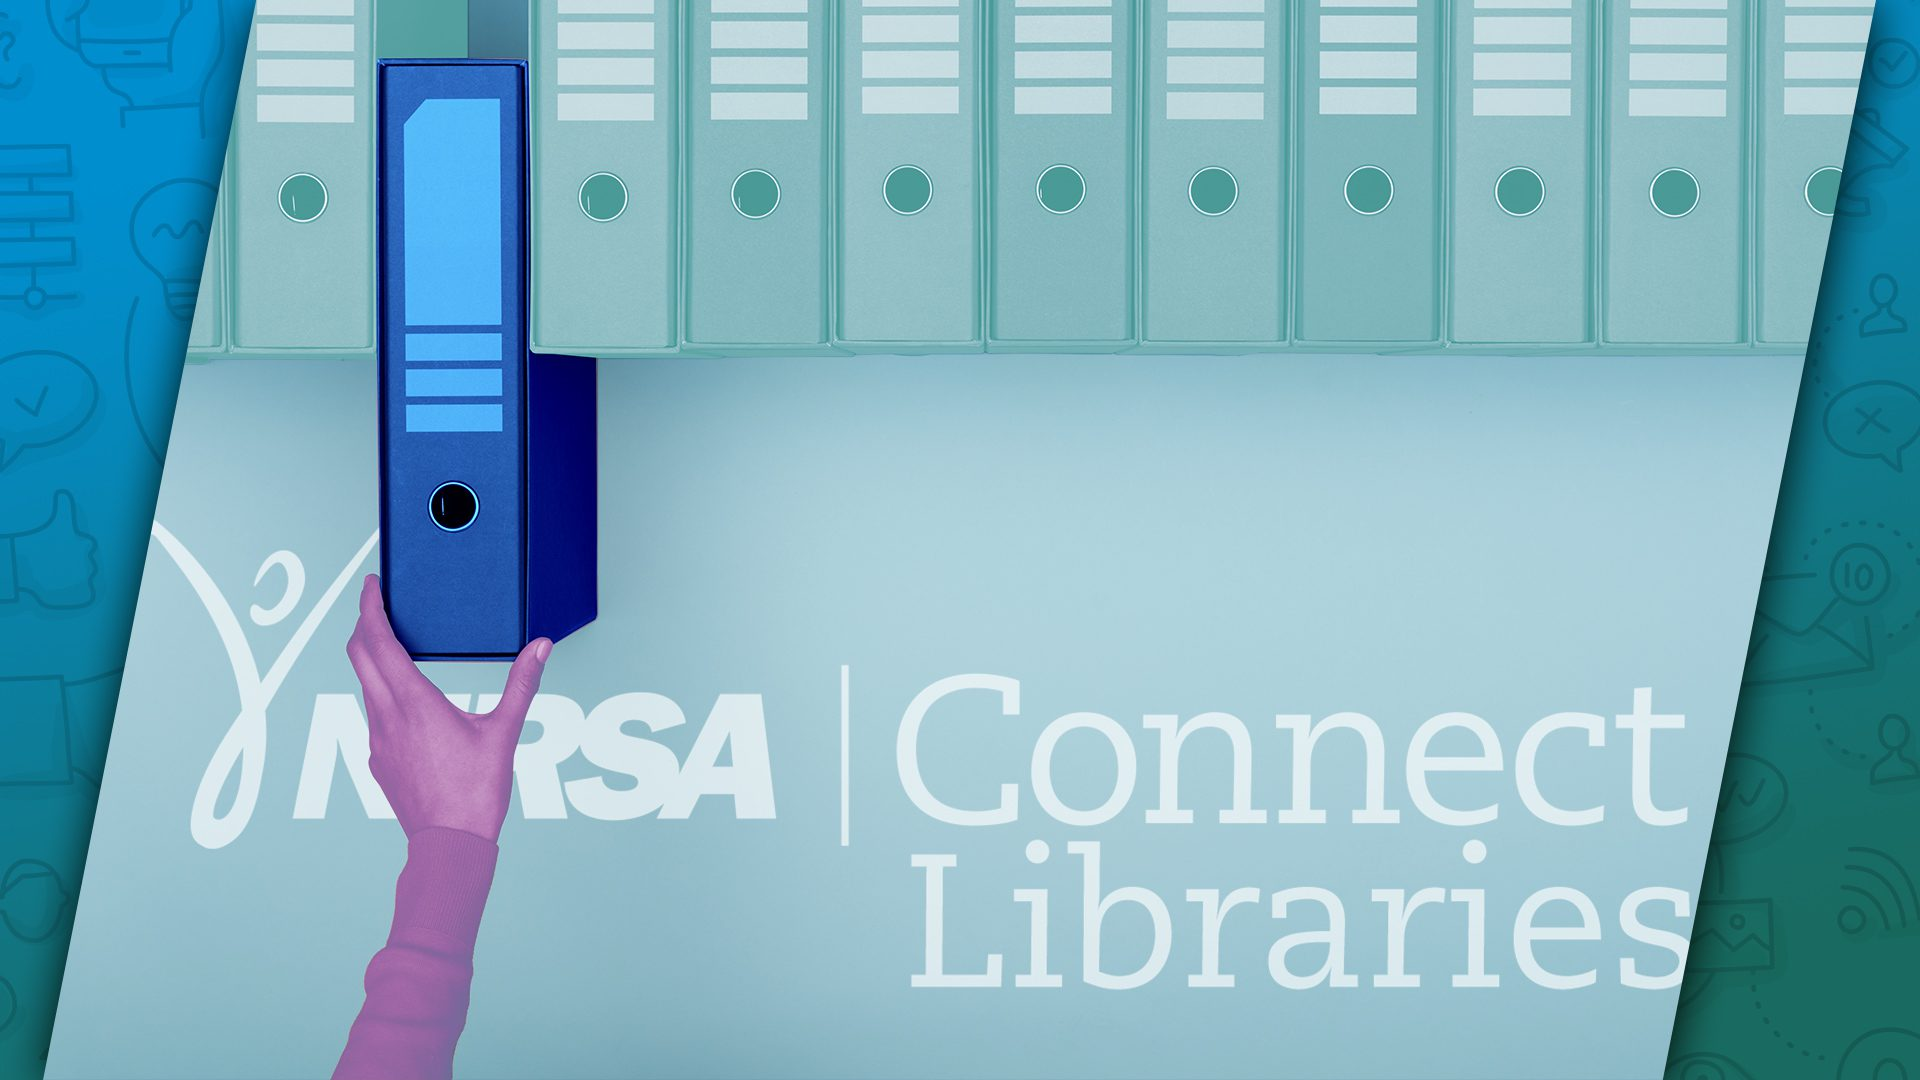 NIRSA Connect Libraries